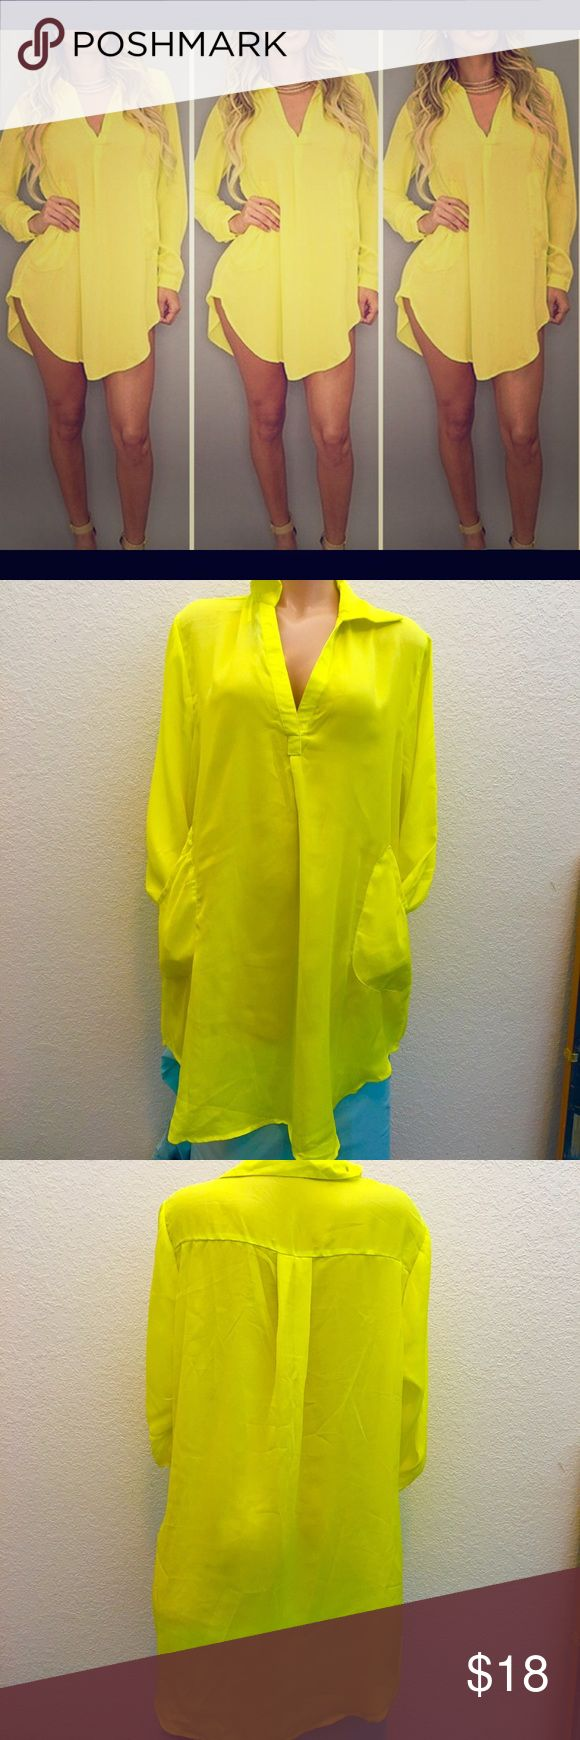 NEW LISTINGVIBRANT YELLOW TUNIC LEGNTH TOP. NEW LISTING  VIBRANT YELLOW SEXY. WOMENS SIZE LONG SLEEVE. SEXY DEEP V NECK & POCKETS. COULD BE WORN AS MINI DRESS AS PICTURED OR AS A TUNIC WITH LEGGINGS OR EVEN AS A COVER UP. CHOICES ARE ENDLESS. THE COLOR IS AMAZING. THE MATERIAL IS NOT SUPER THIN BUT COULD BE SEE THROUGH IN DIRECT LIGHT I HAVE IN WHITE AND DO WEAR CAMI AND LACE CAPRI LEGGINGS AND A BELT. SUPER CUTE OUTFIT. Could go from summer to fall with addition of fleece leggings turtle…